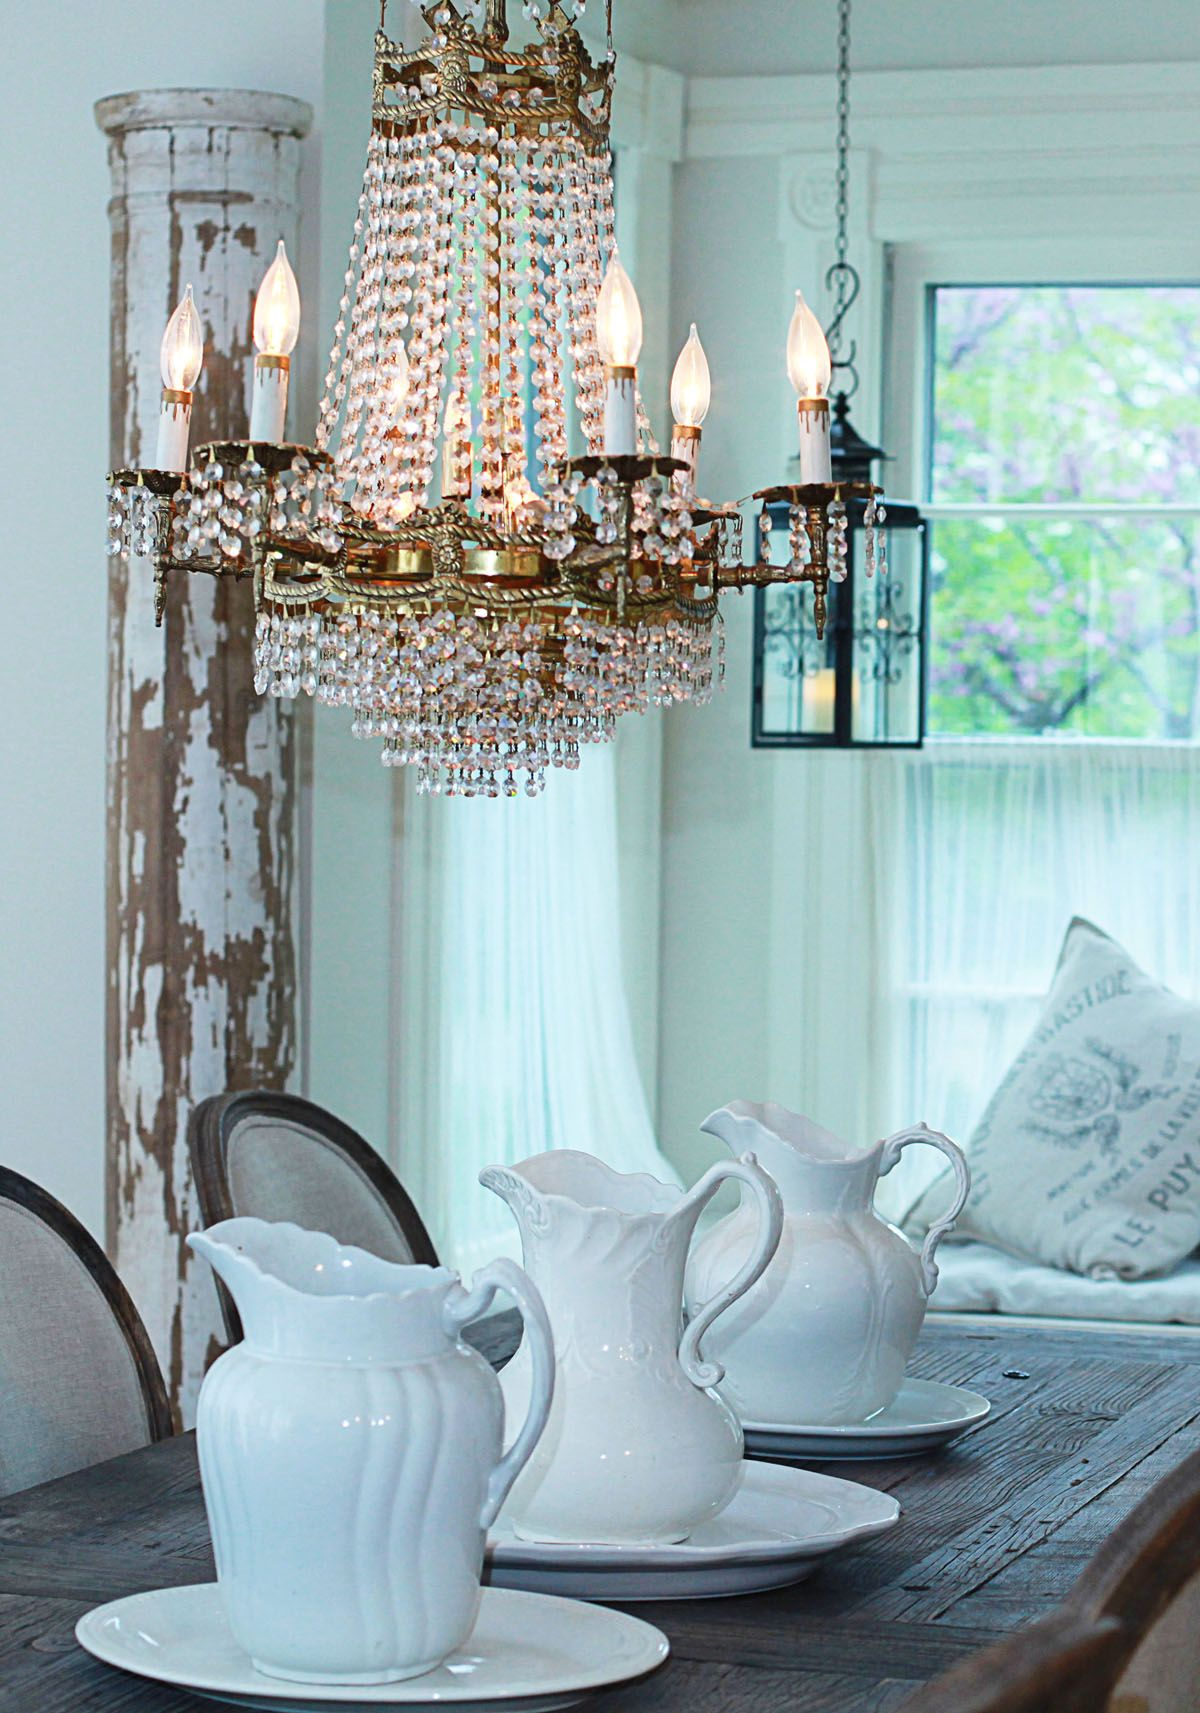 usually not a fan of chandeliers, but this...